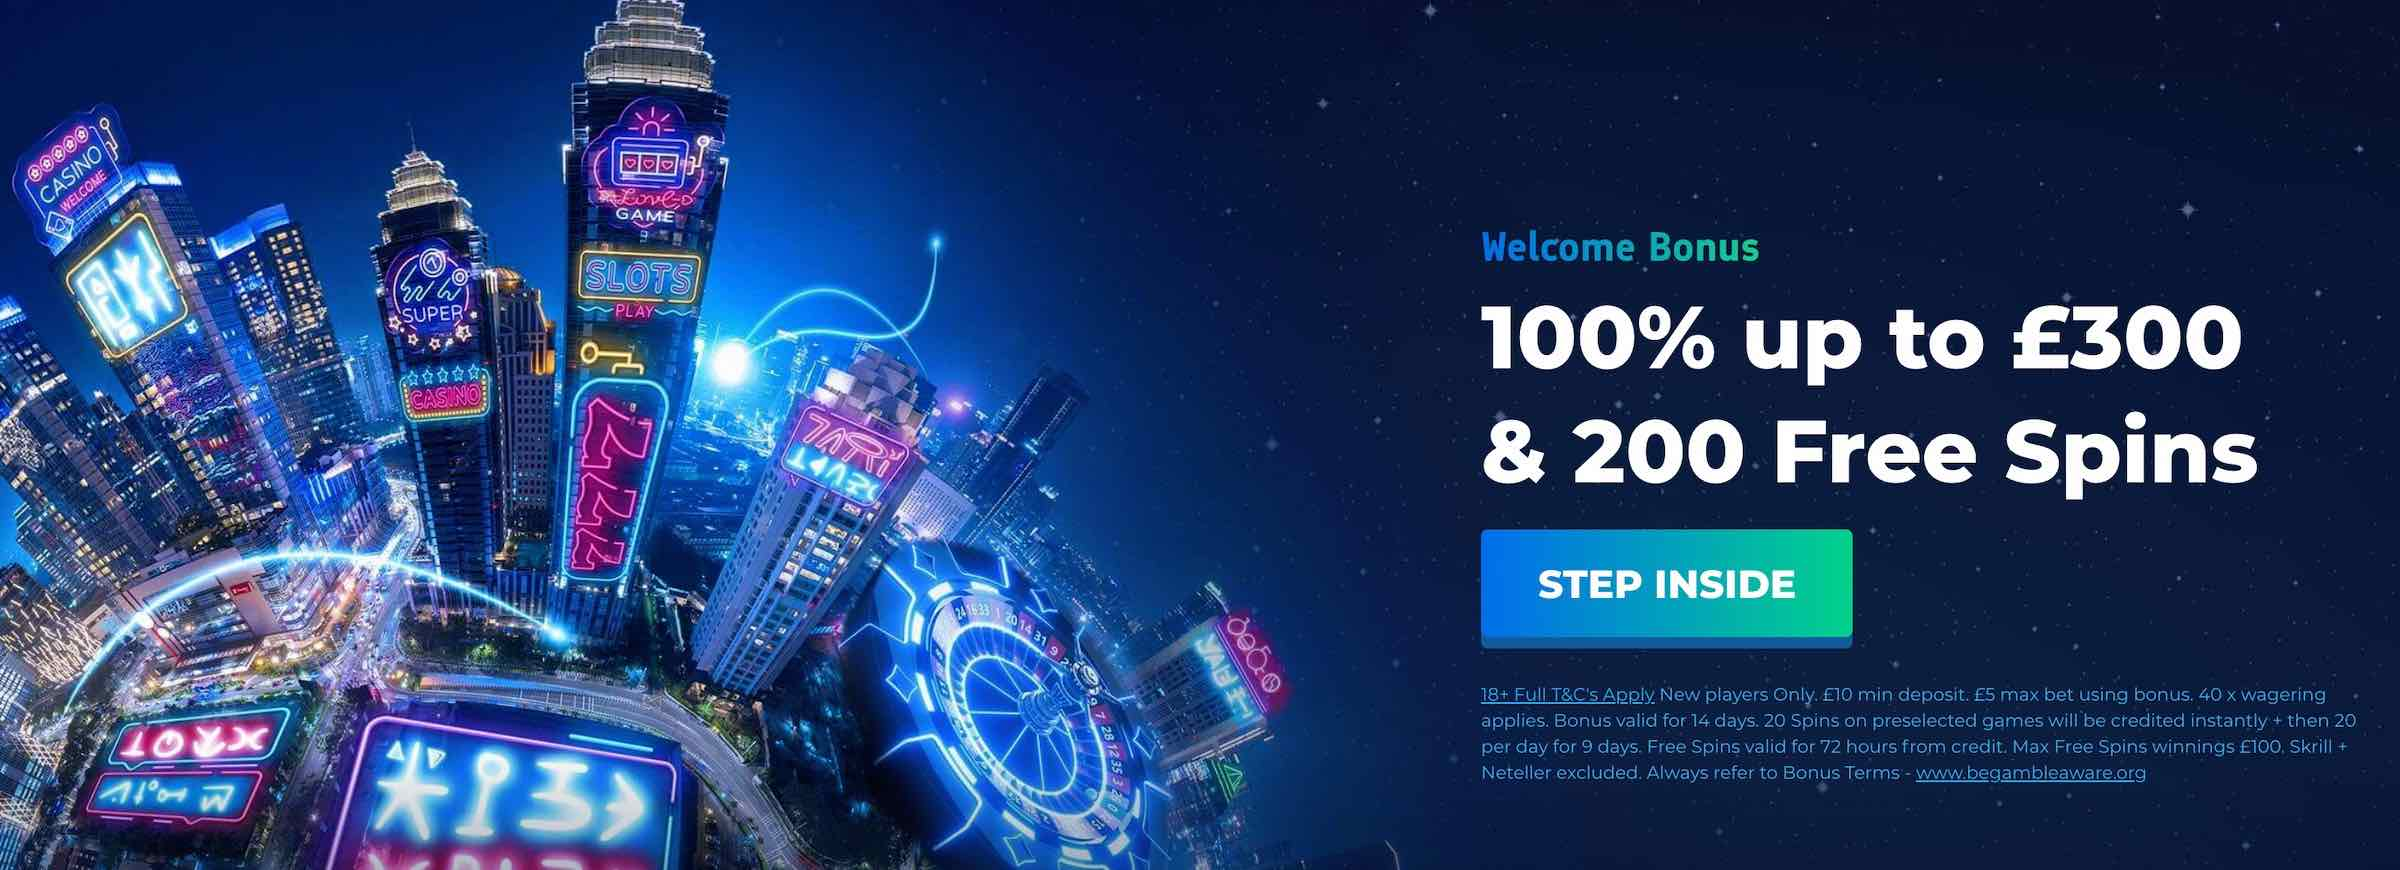 Planet Casino UK Bonus